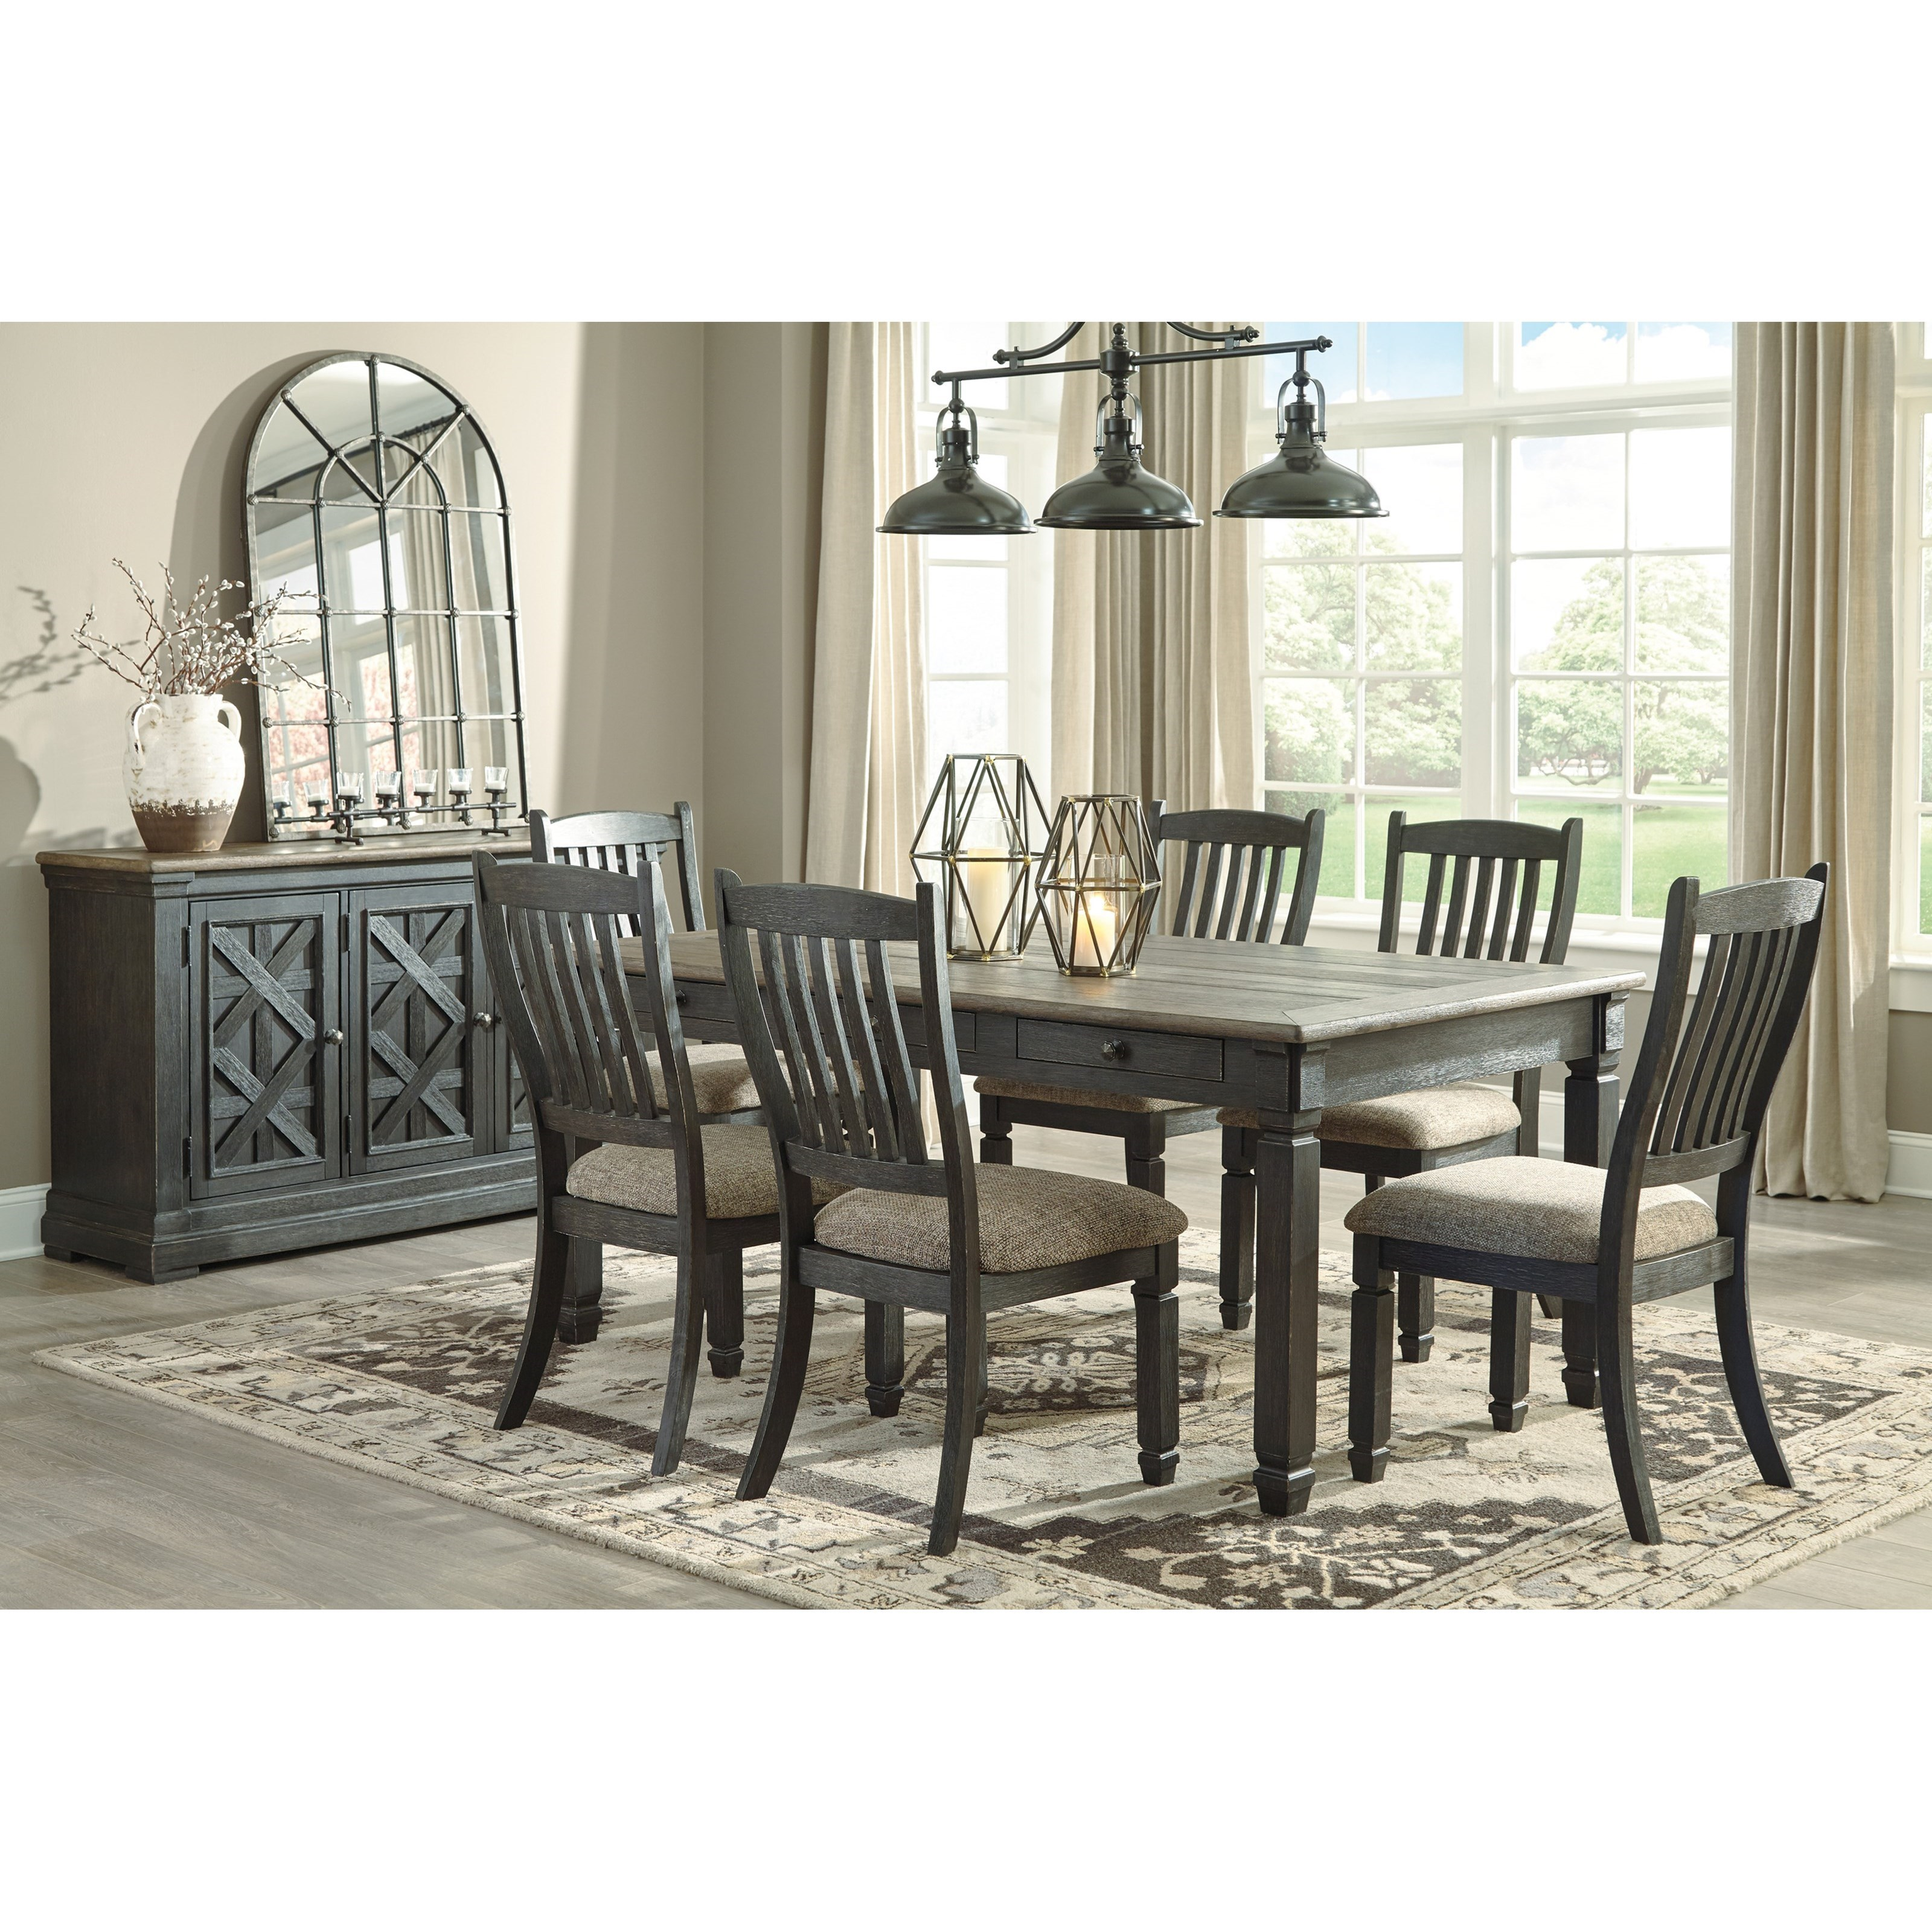 Signature Design By Ashley Tyler Creek Casual Dining Room